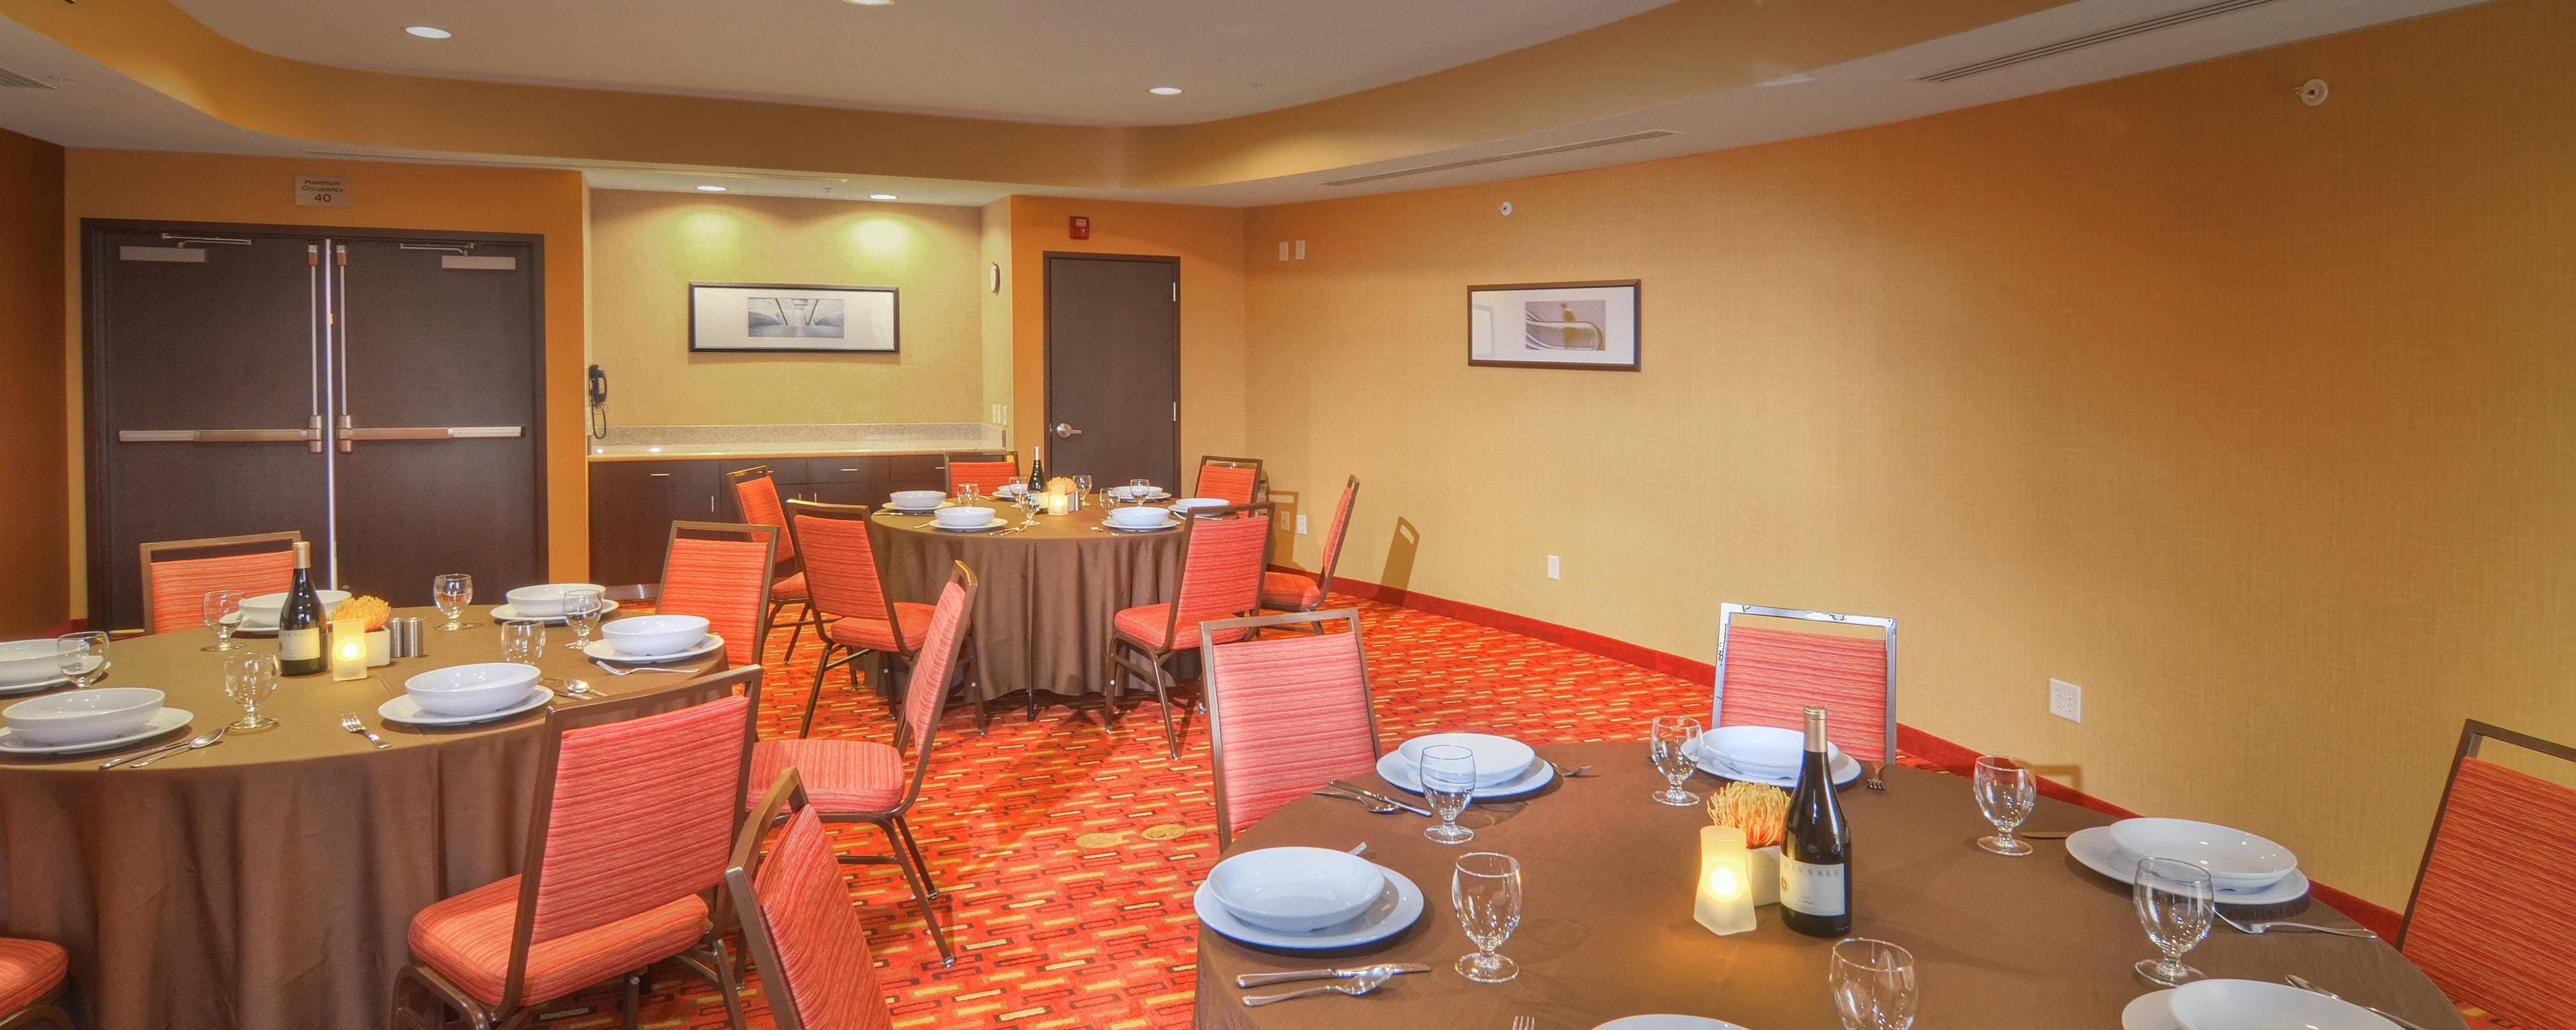 Meeting Room – Banquet Set-Up